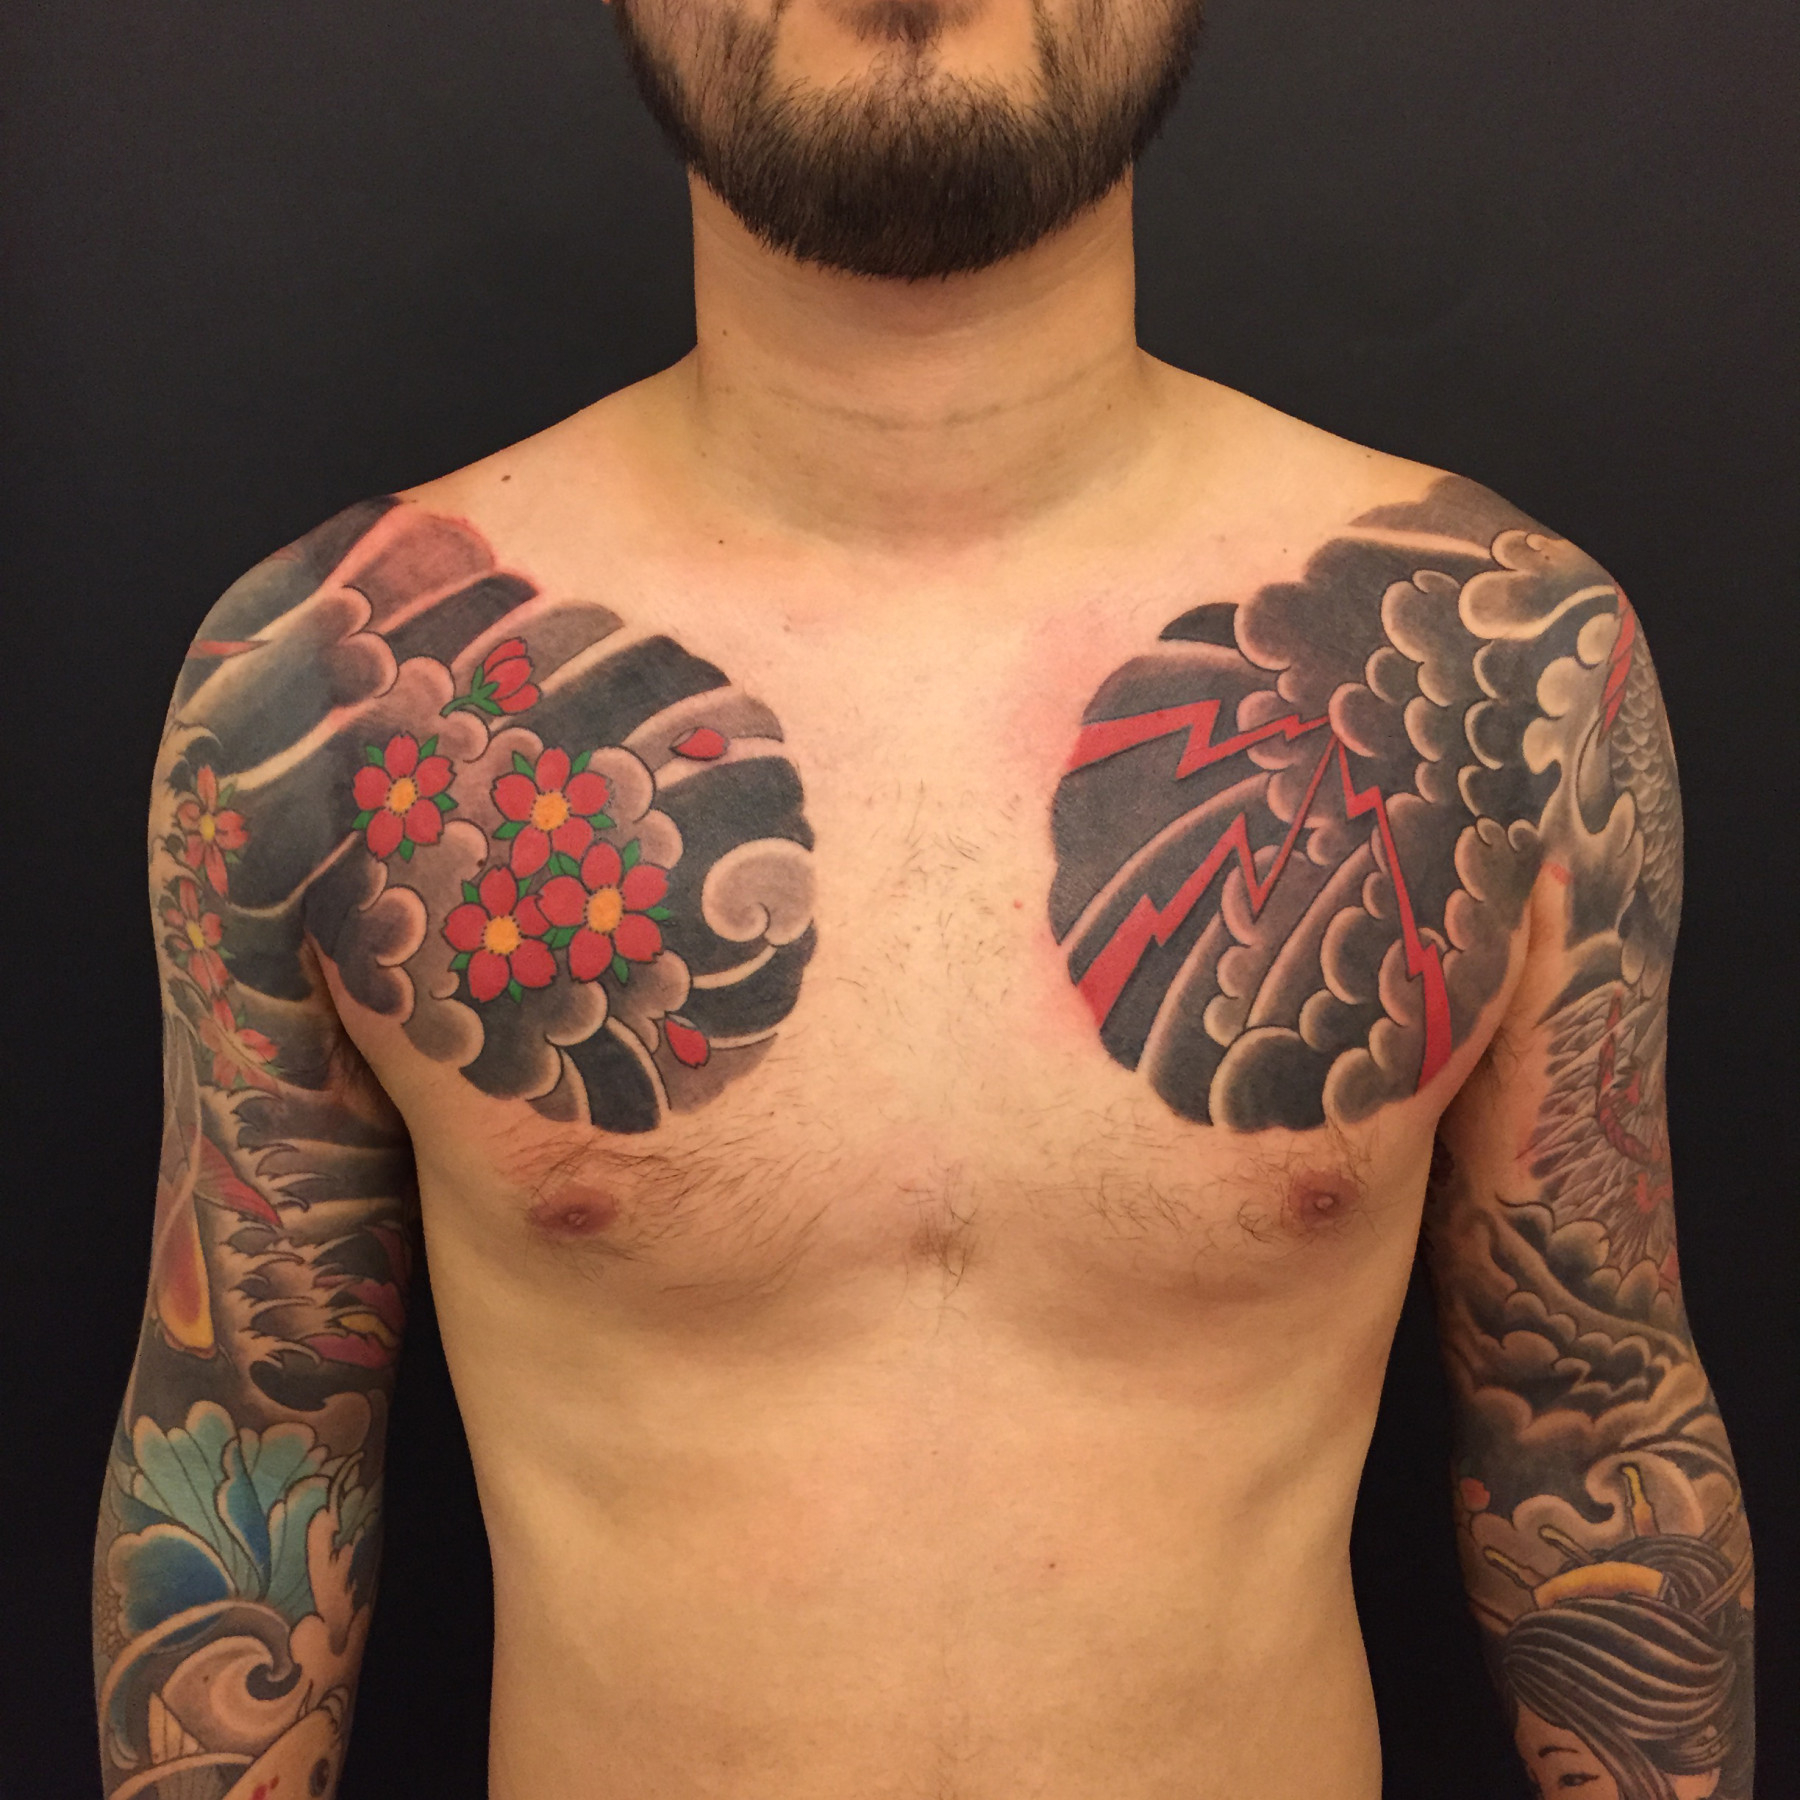 Men Show Japanese Chest Tattoos Golfian intended for dimensions 1800 X 1800